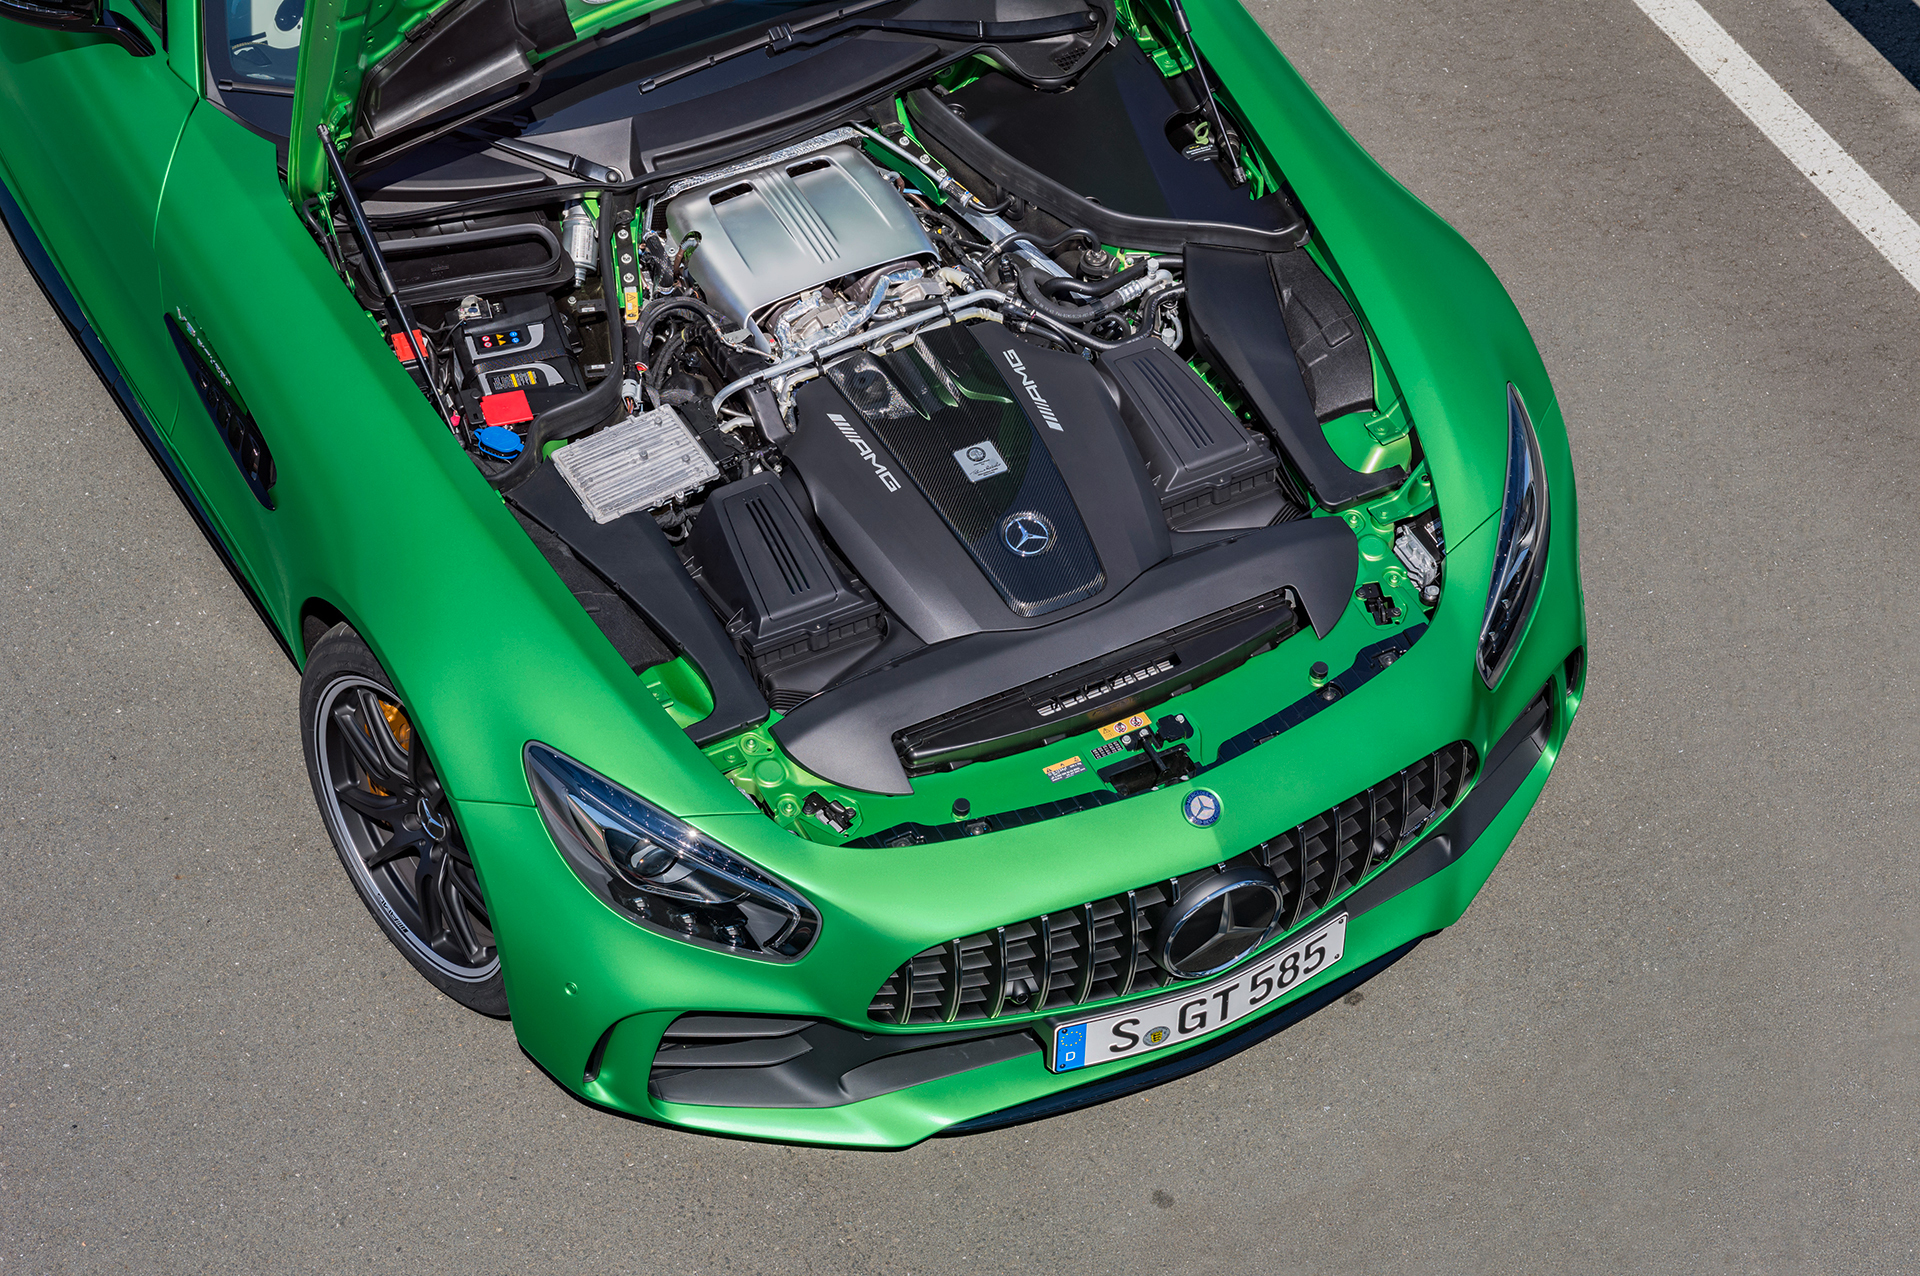 Mercedes-AMG GT R - 2016 - side-face / profil - under the hood